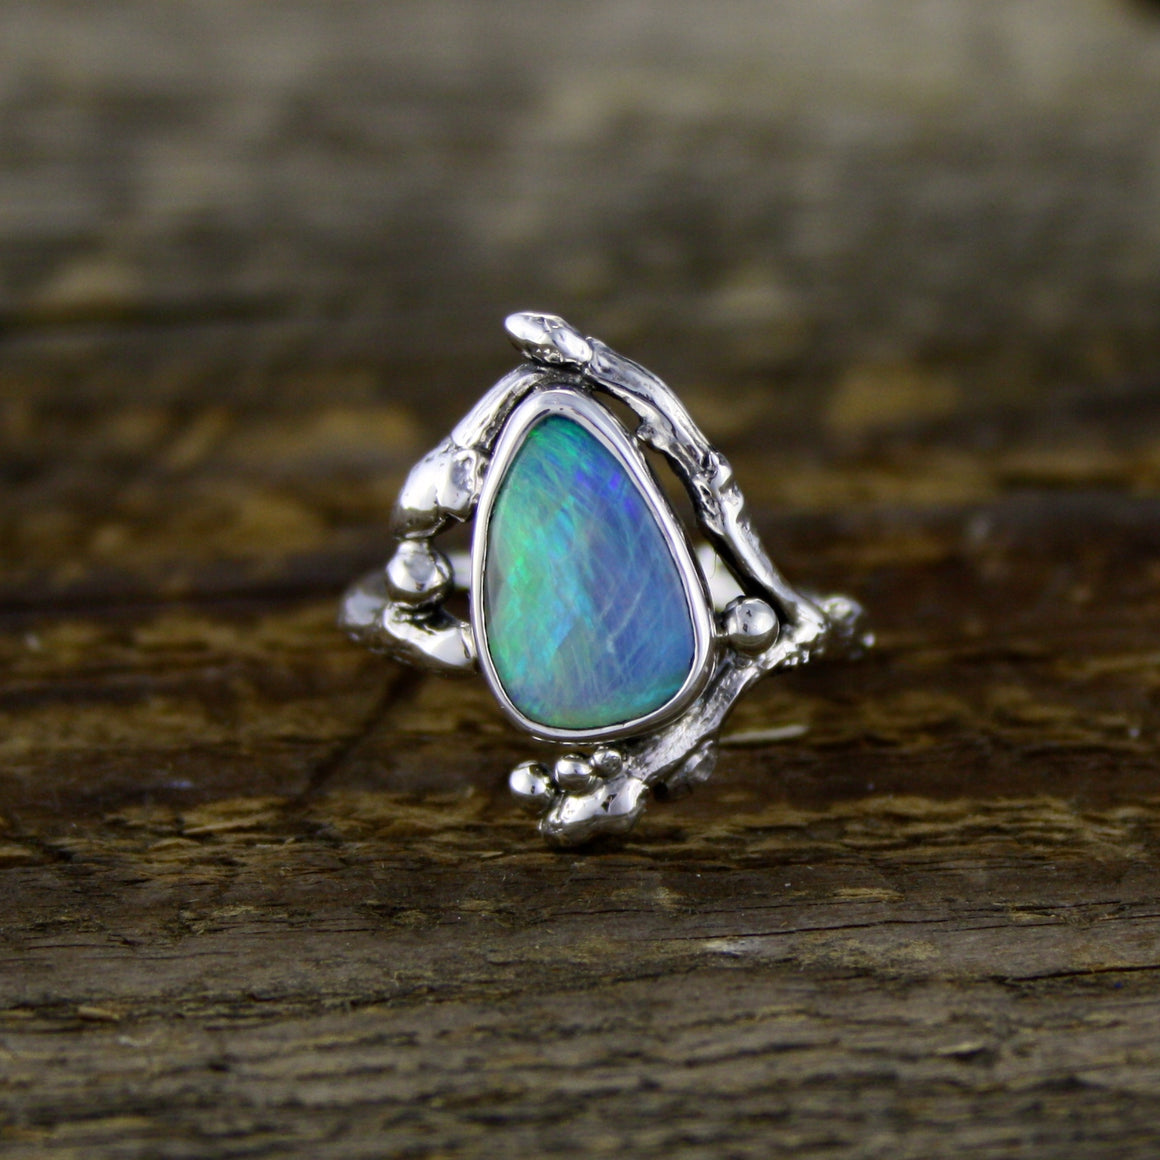 Crystal Opal Bud Ring